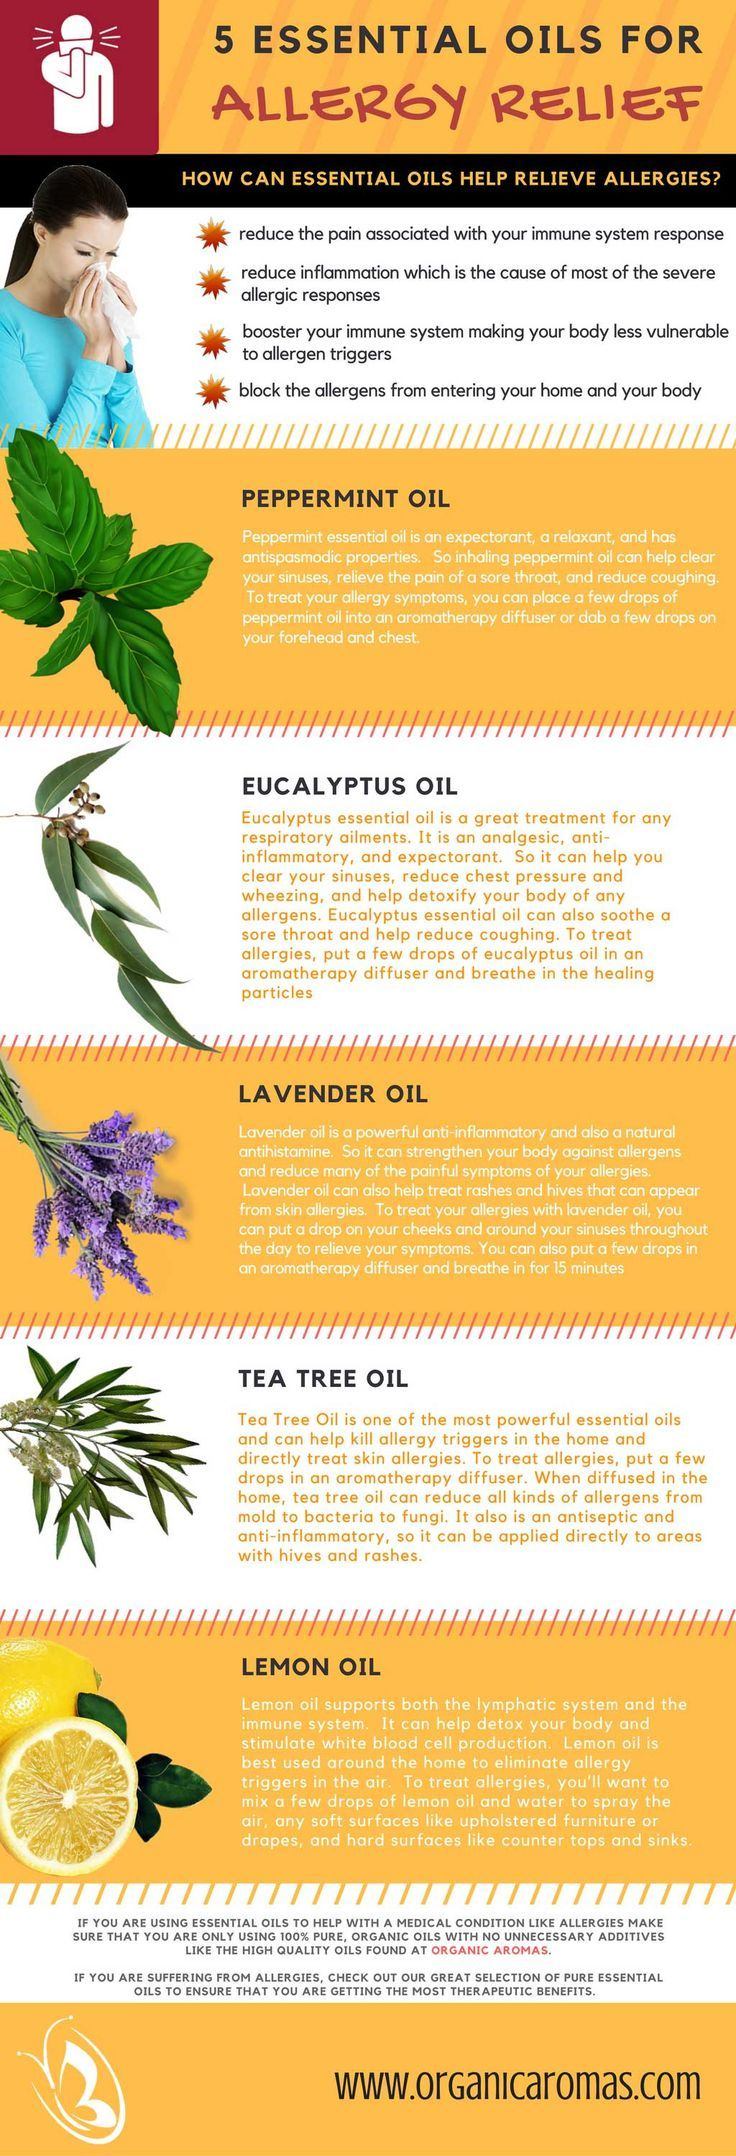 5 Essential Oils For Allergy Relief - #OrganicAromas Allergy sufferers know that an allergy attack can be absolutely miserable. You can spend days, even weeks, walking around in a fog, feeling like you have the flu. So you want relief and fast. One of the best ways to treat allergies is with essential oils. They are safe, natural, and most importantly, incredibly effective at reducing the symptoms of an allergic response.: